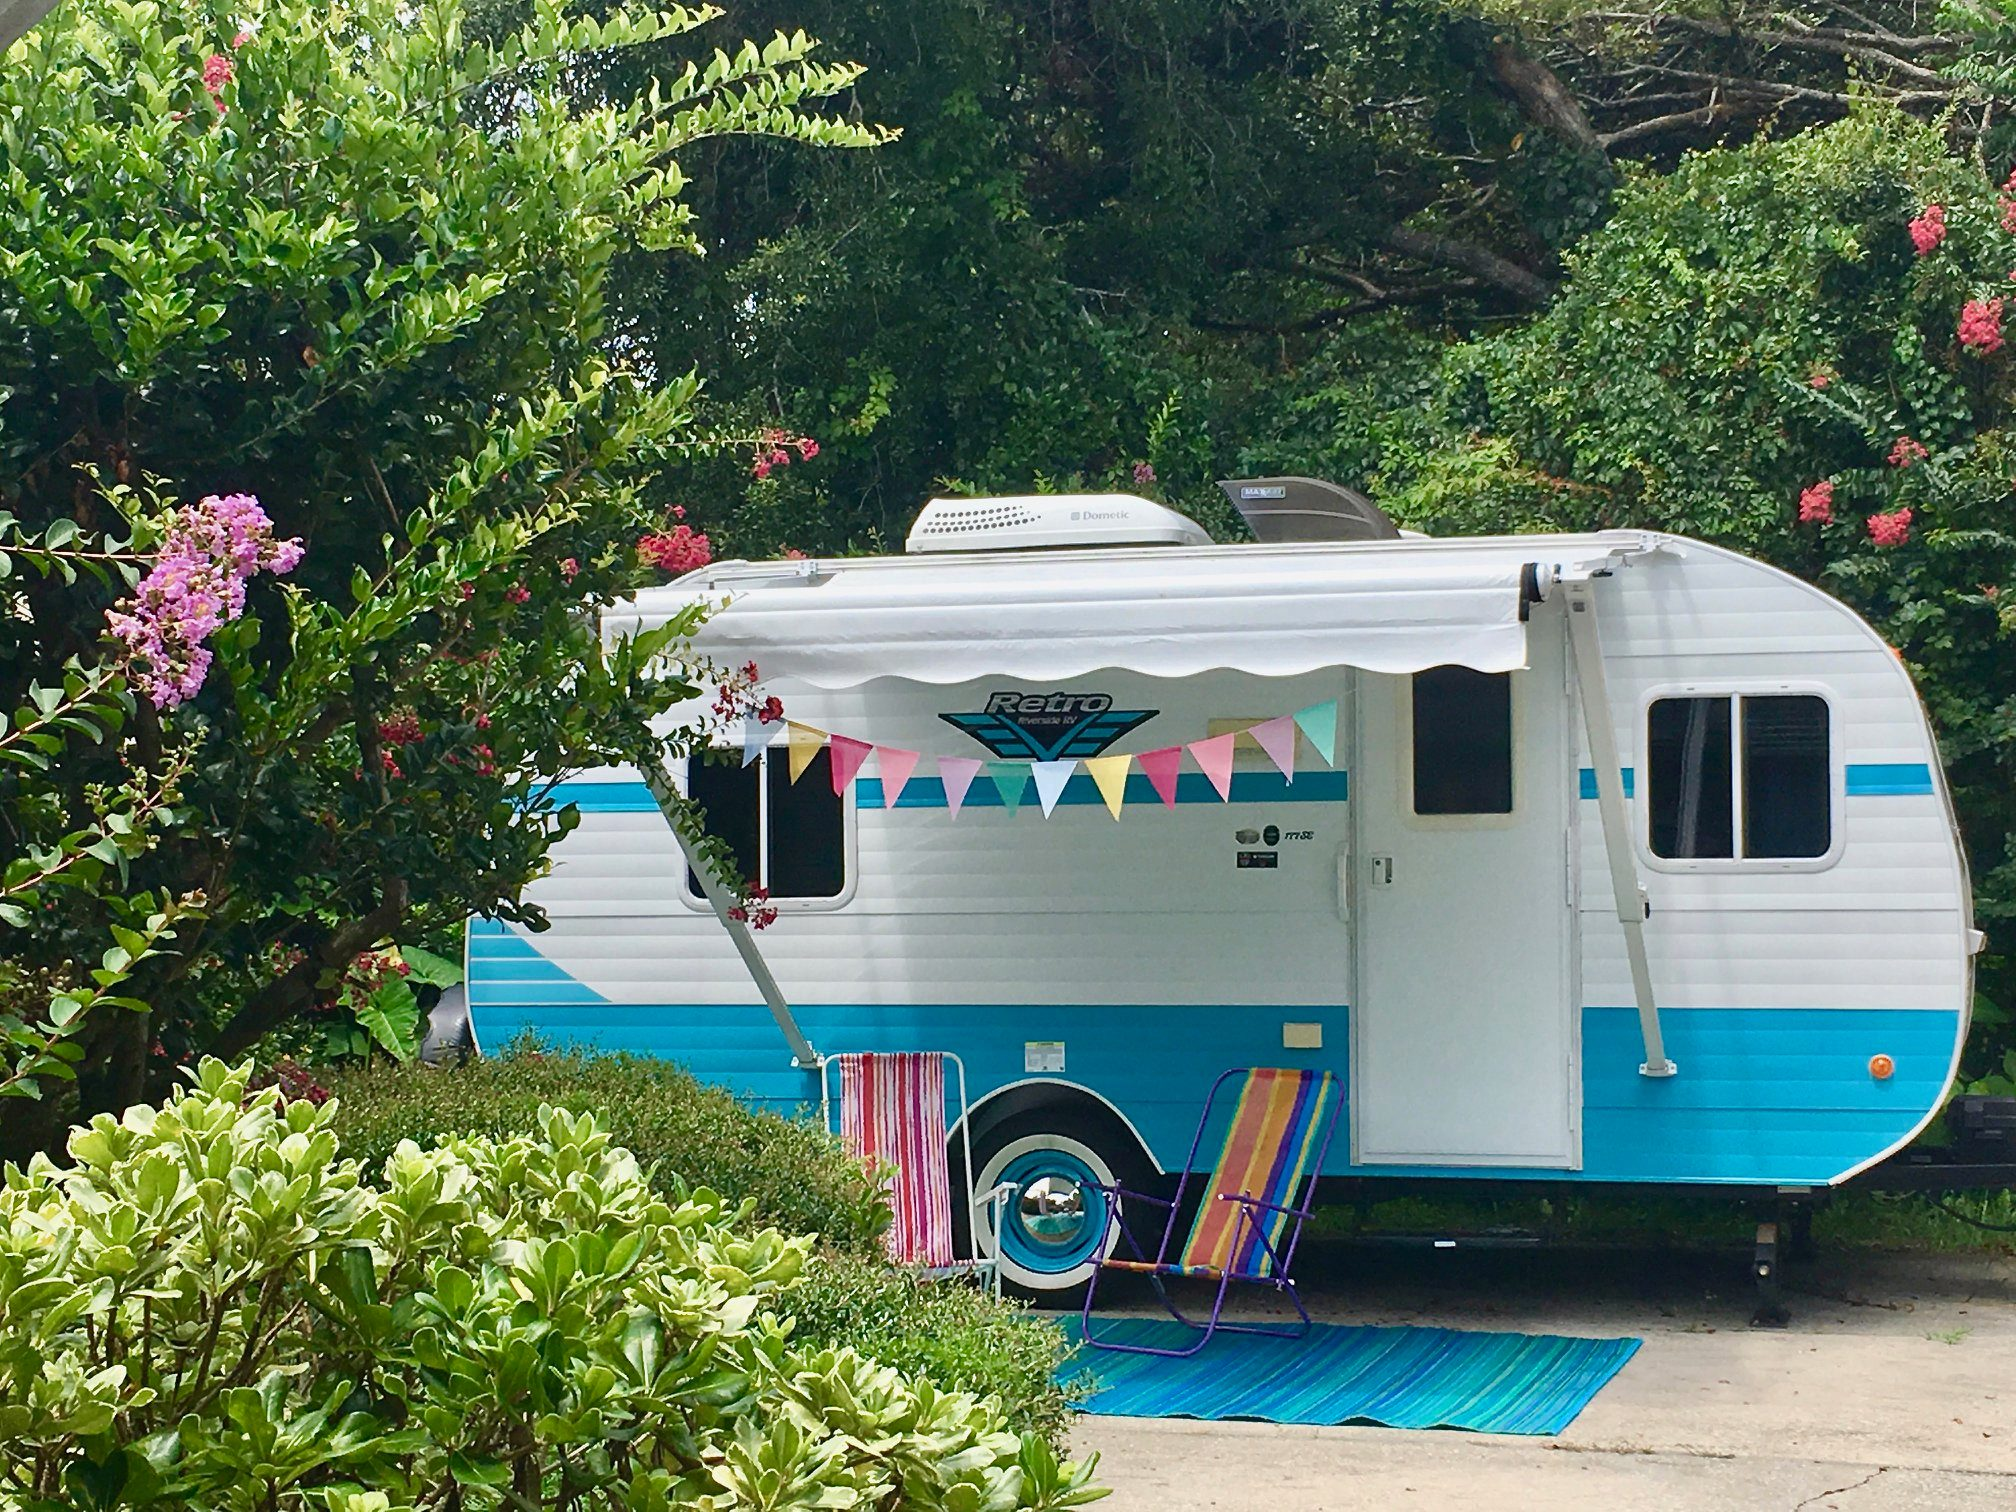 Cupcake would love to decorate your campsite...   Adorable retro-inspired design augmented with wood interior.  Clean, safe, comfortable. She's a beauty inside and out. . Riverside Rv Retro 2017